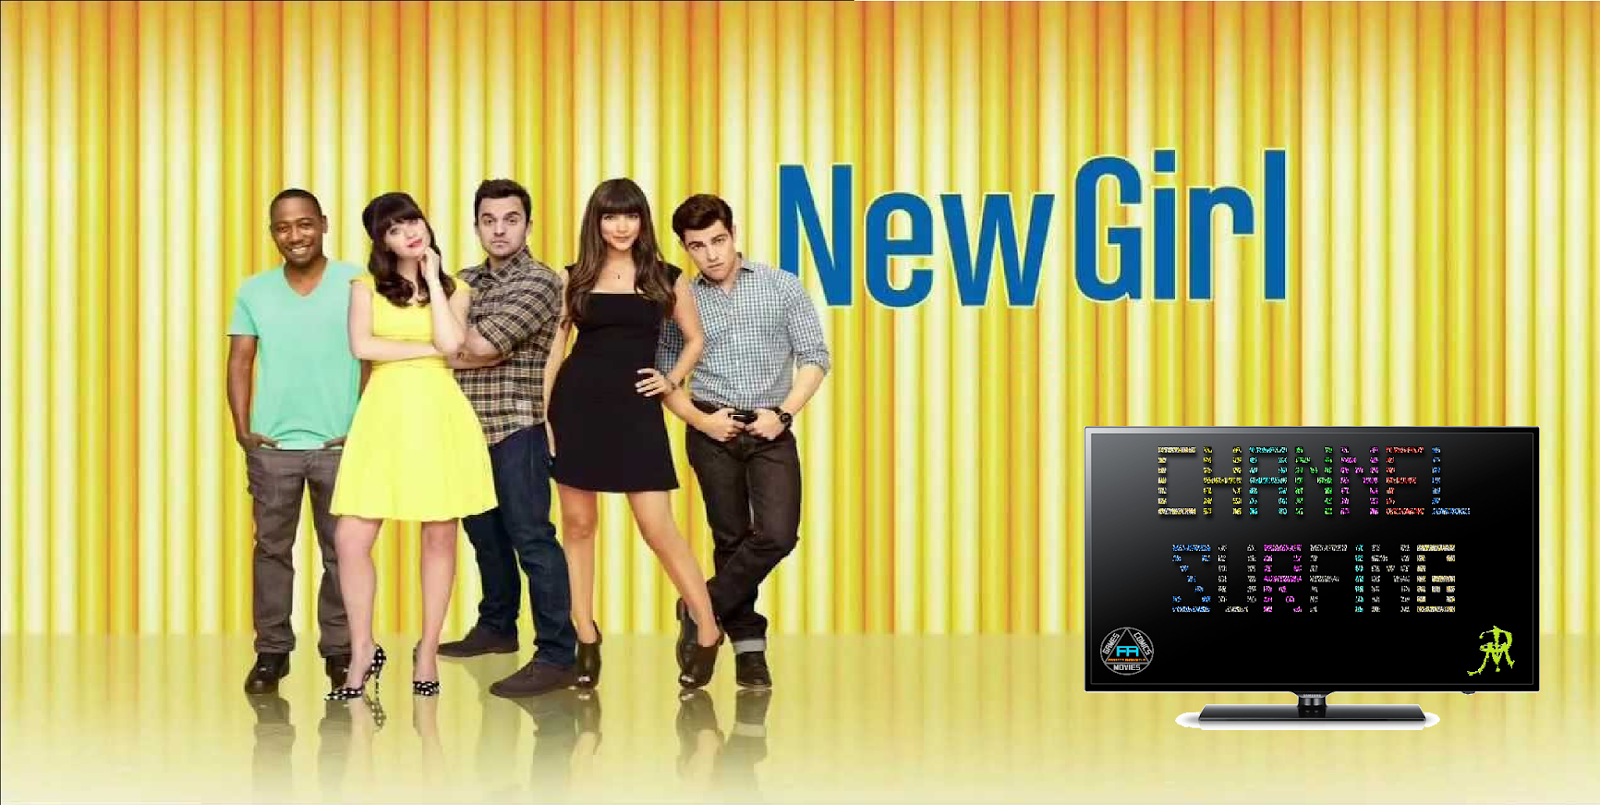 Watch New Girl on Fox Season 4 episode 3